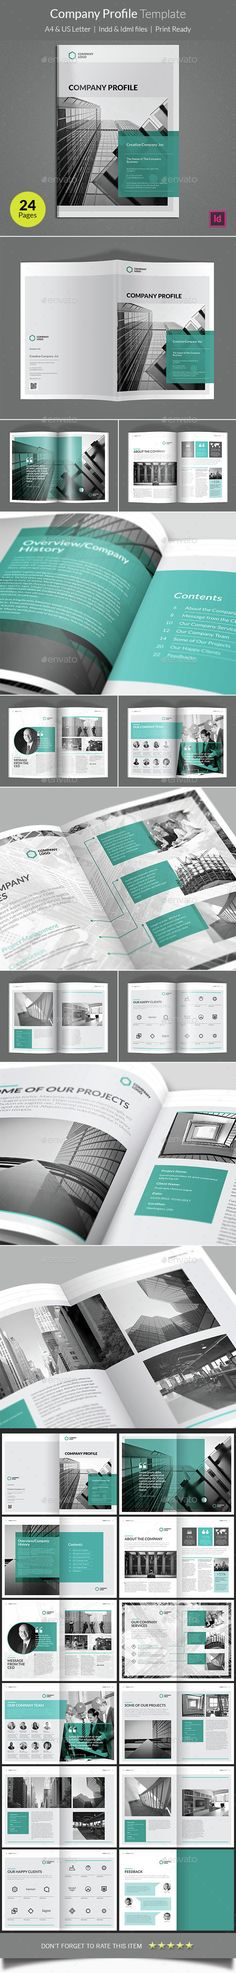 Graphic Design Services - Hire a Graphic Designer Today Company Profile Template, Company Profile Design, Corporate Brochure Design, Brochure Layout, Brochure Inspiration, Graphic Design Inspiration, Print Layout, Layout Design, Design Design